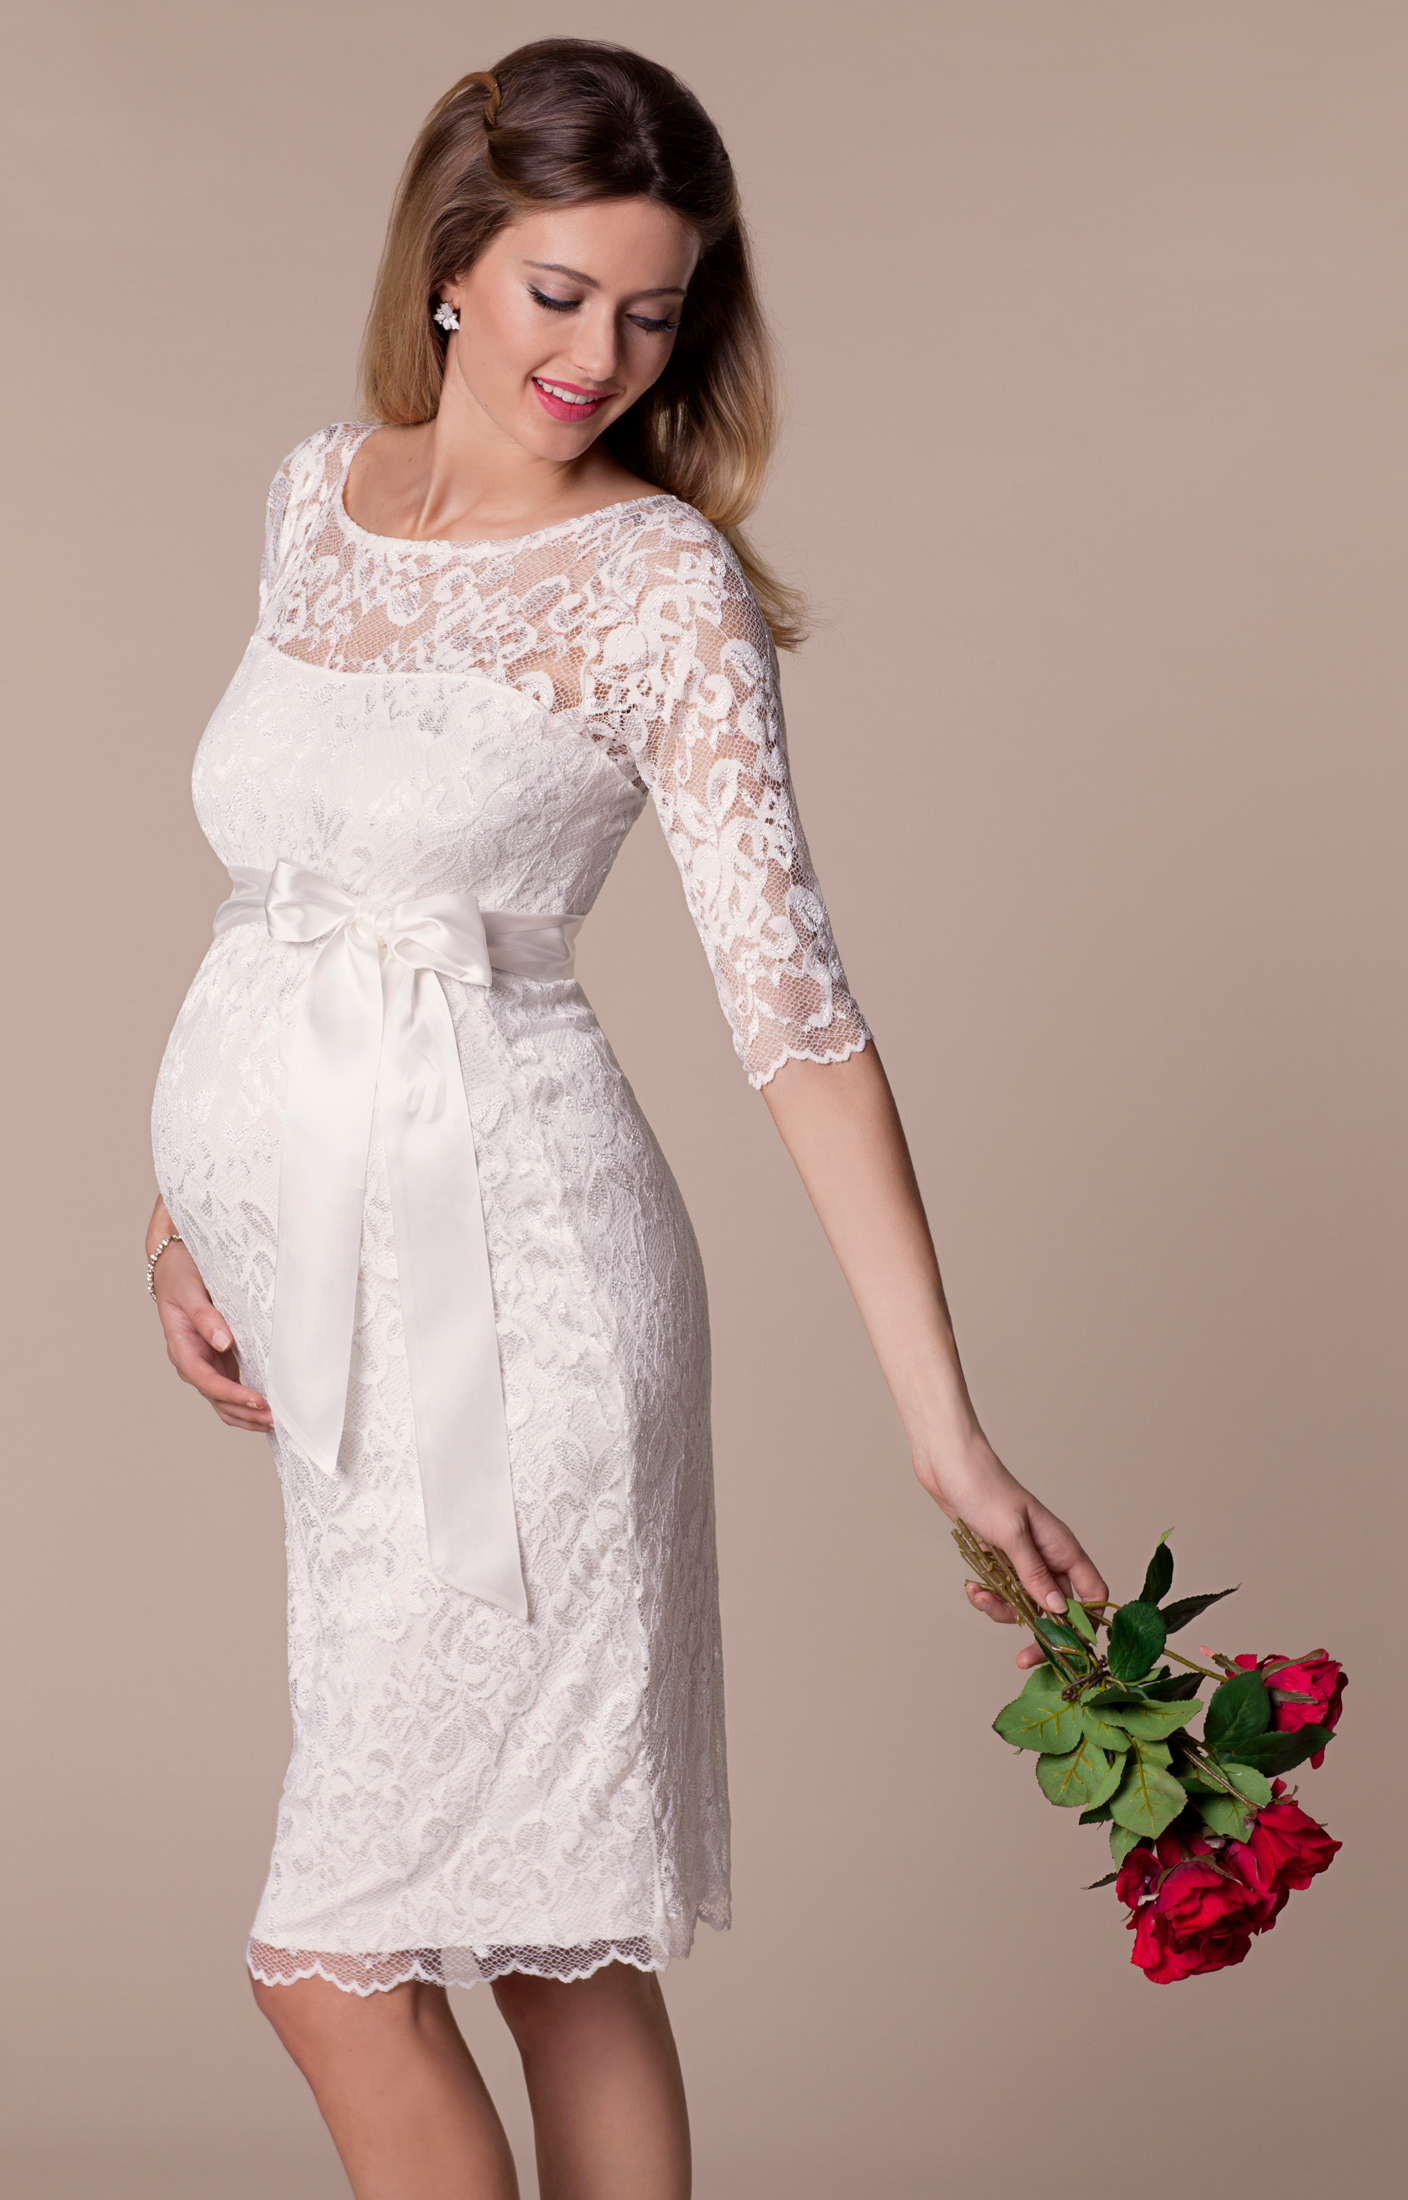 Amelia lace maternity wedding dress short ivory maternity amelia lace maternity wedding dress short ivory maternity wedding dresses evening wear and party clothes by tiffany rose ombrellifo Choice Image